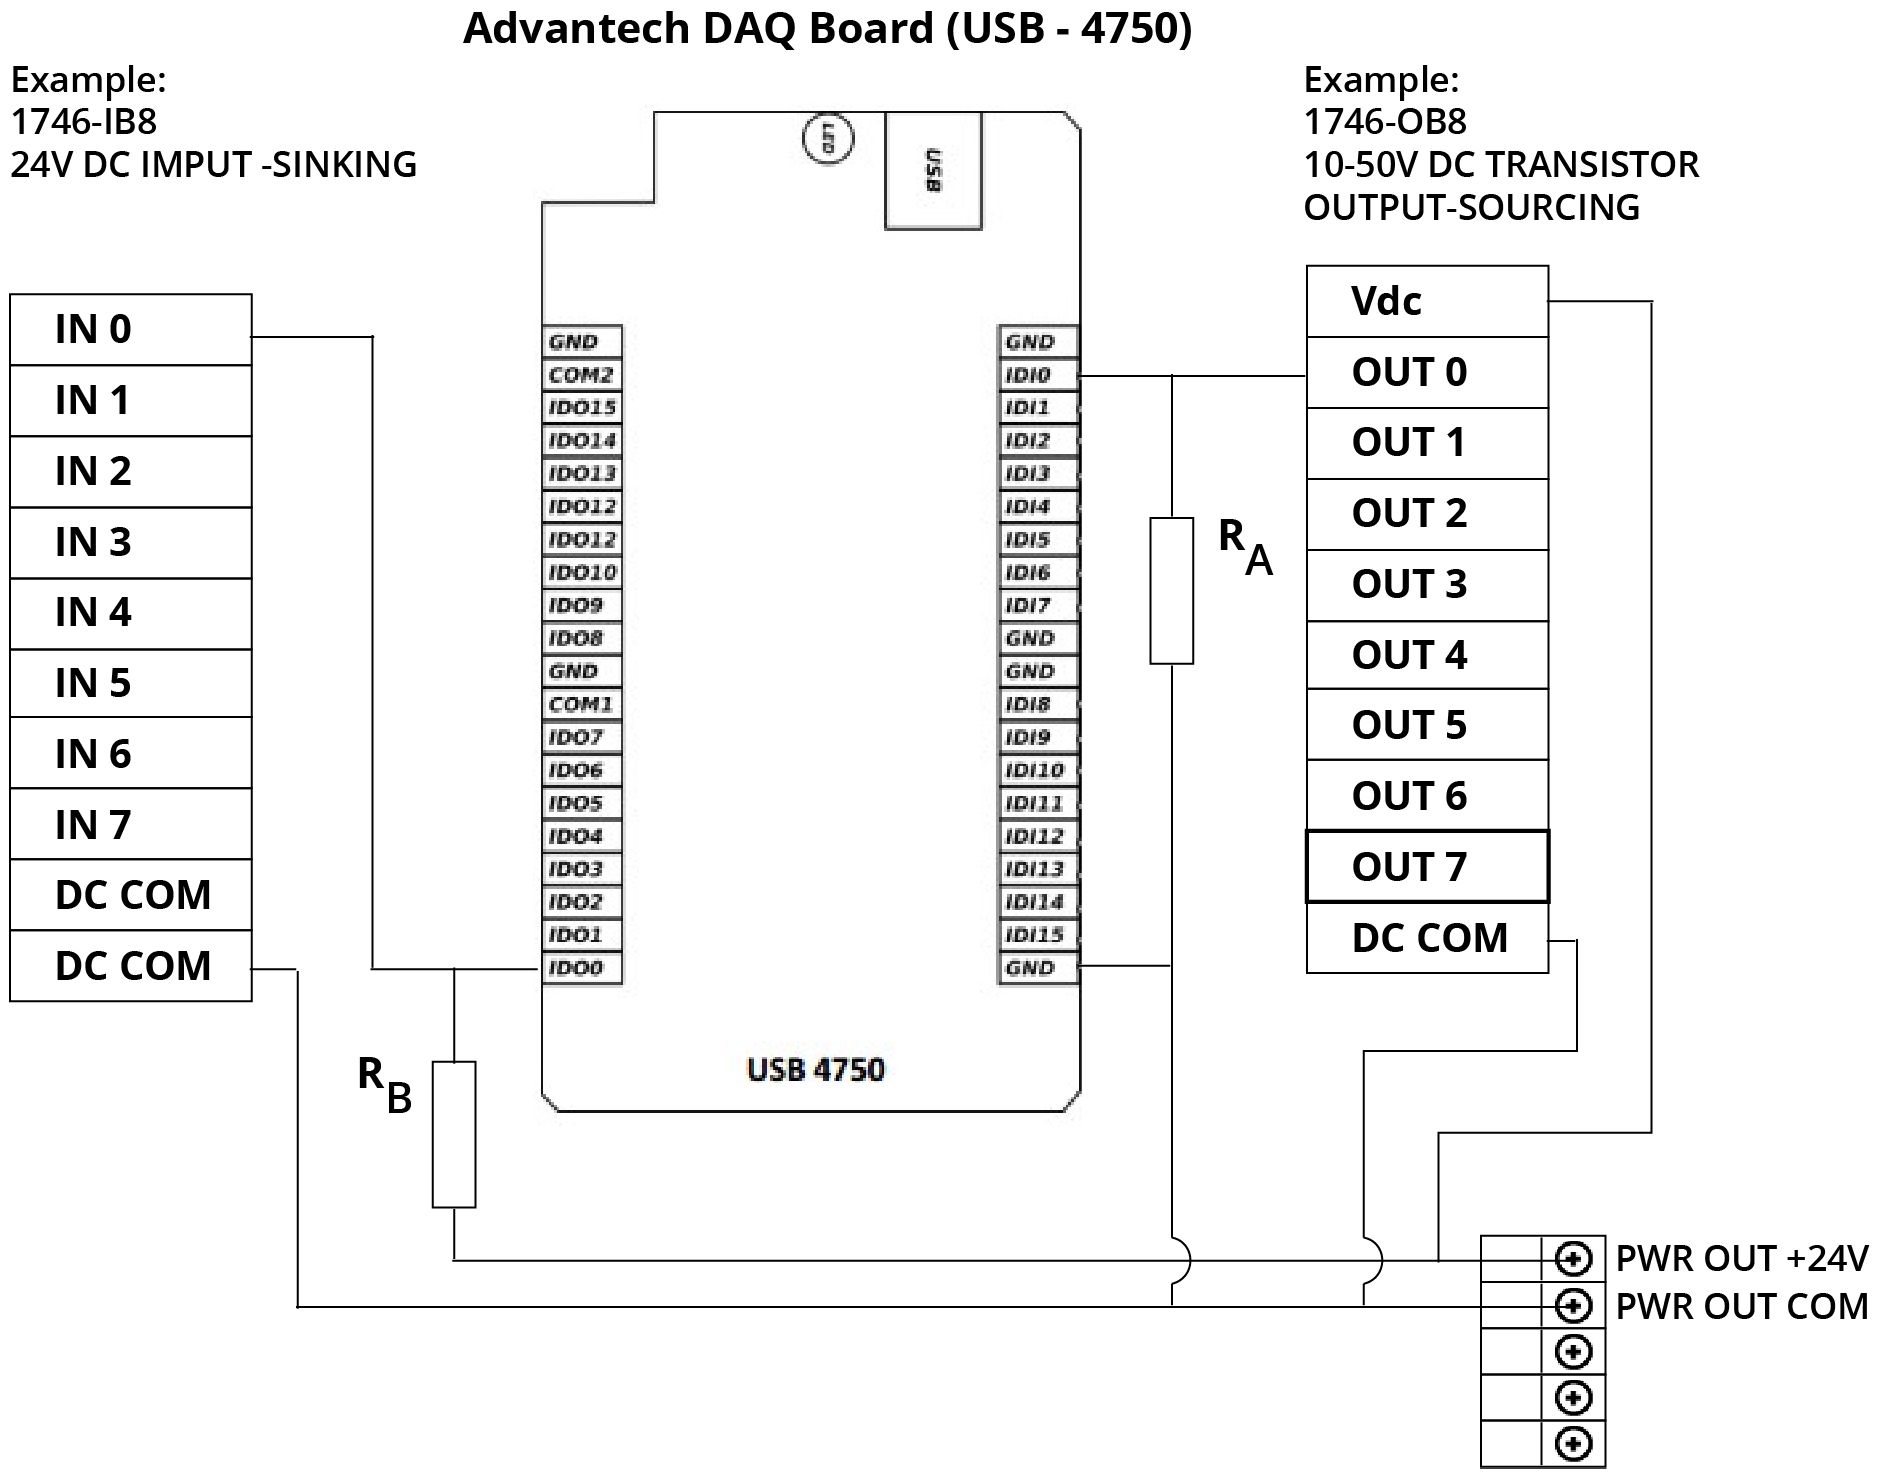 Ab Wiring Diagrams Opinions About Wiring Diagram \u2022 AB 1794-IB16 Wiring- Diagram Ab Wiring Diagrams